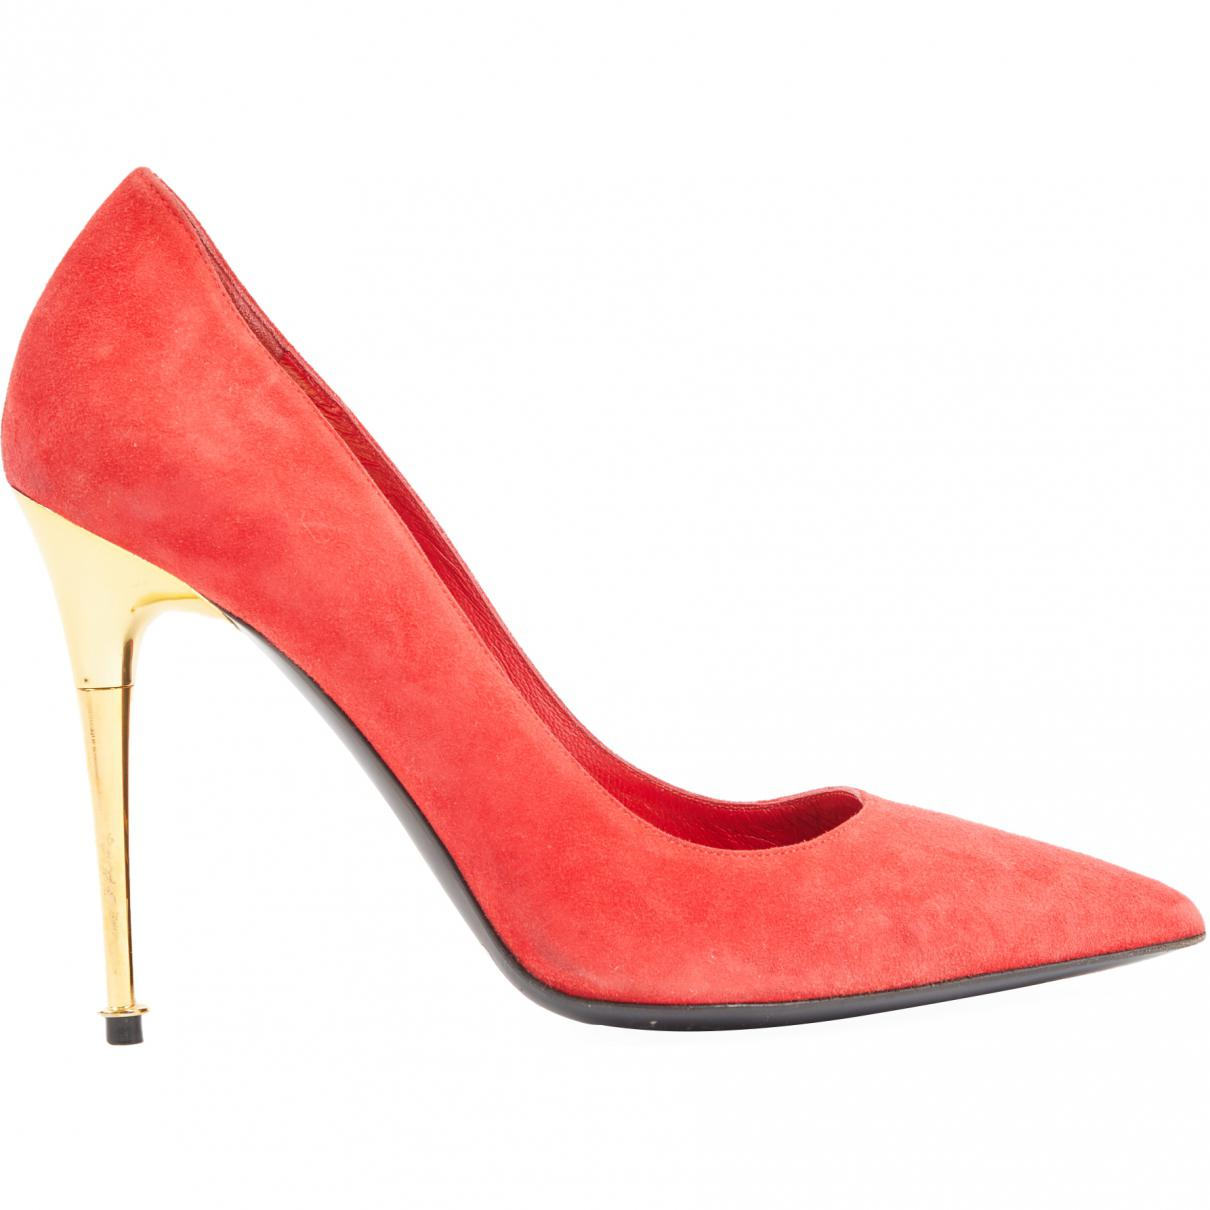 Pre-owned - Heels Tom Ford PcrzY